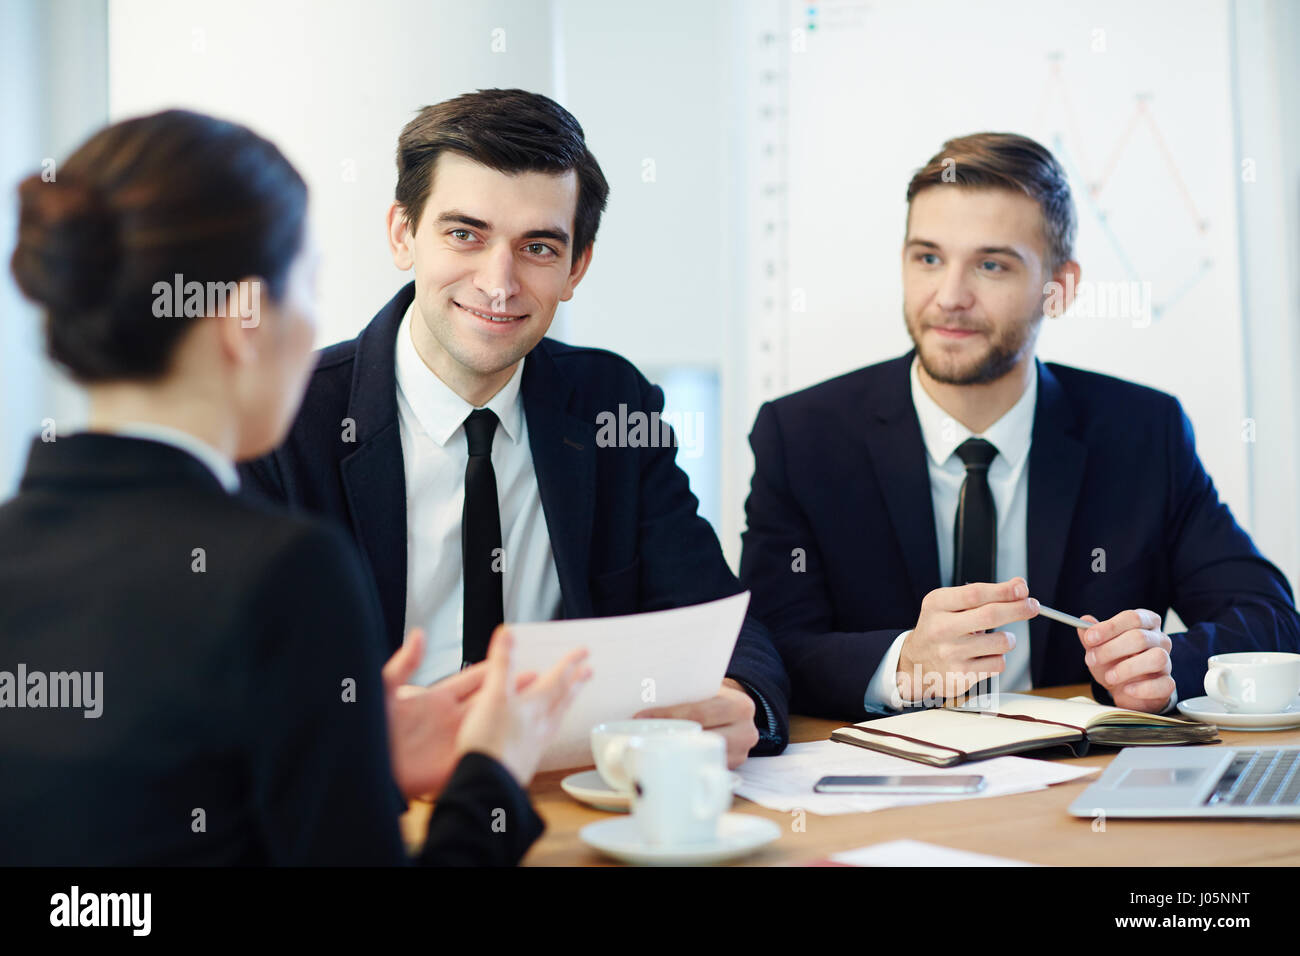 Confident men looking at young co-worker and listening to her - Stock Image